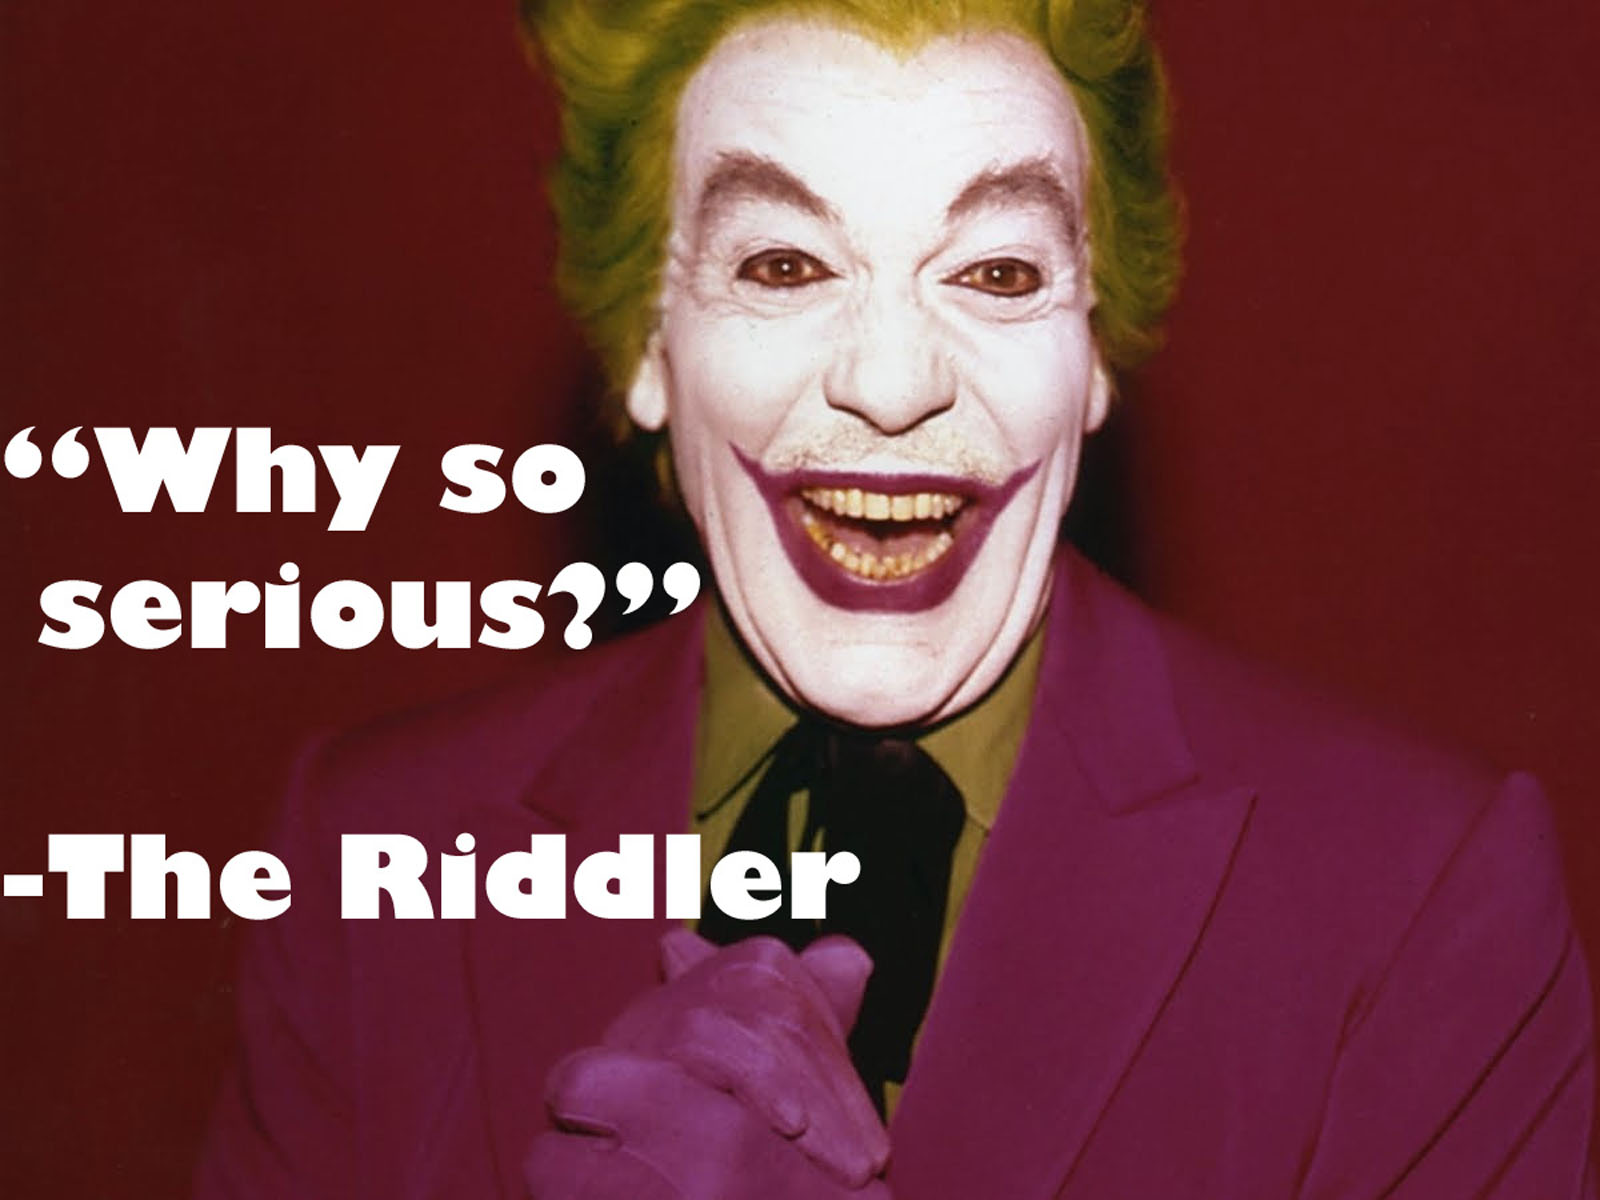 wallpapers: Why so serious wallpapers